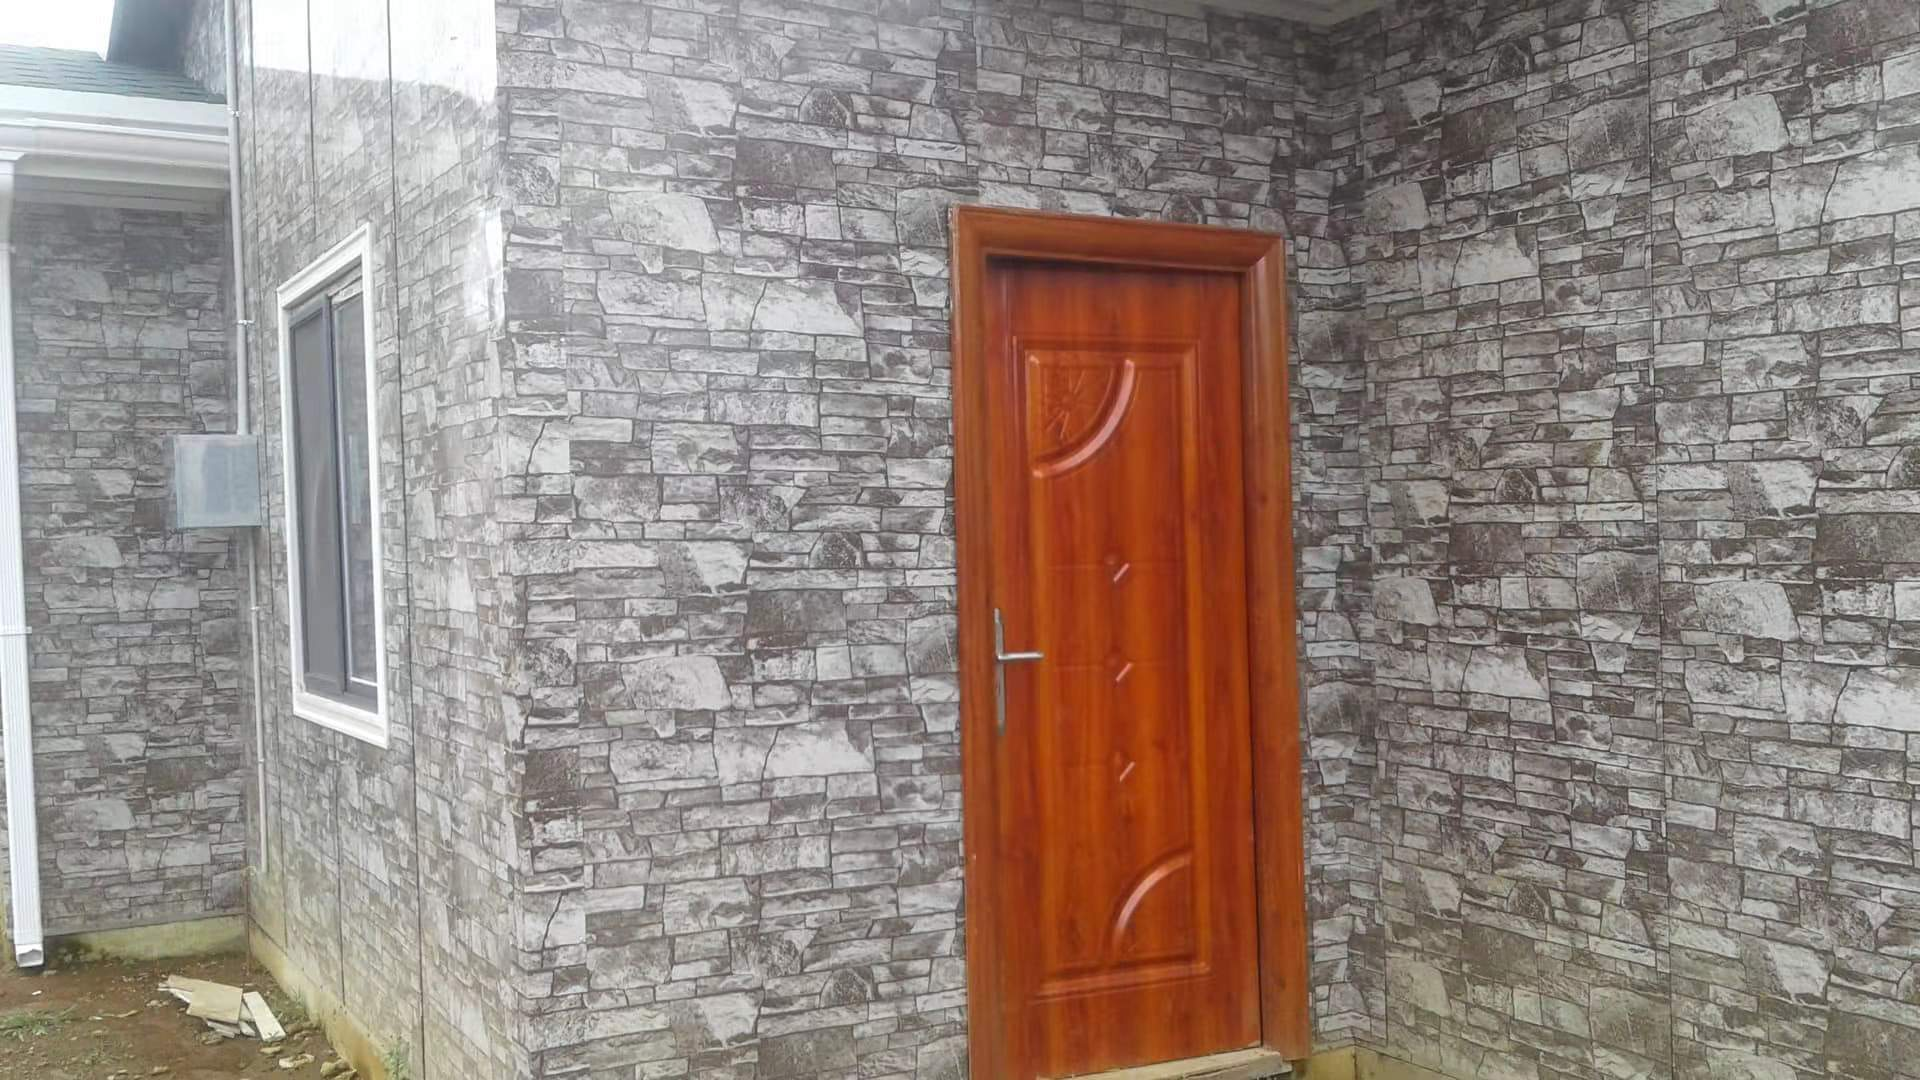 Outdoor wall tiles of the dormitory